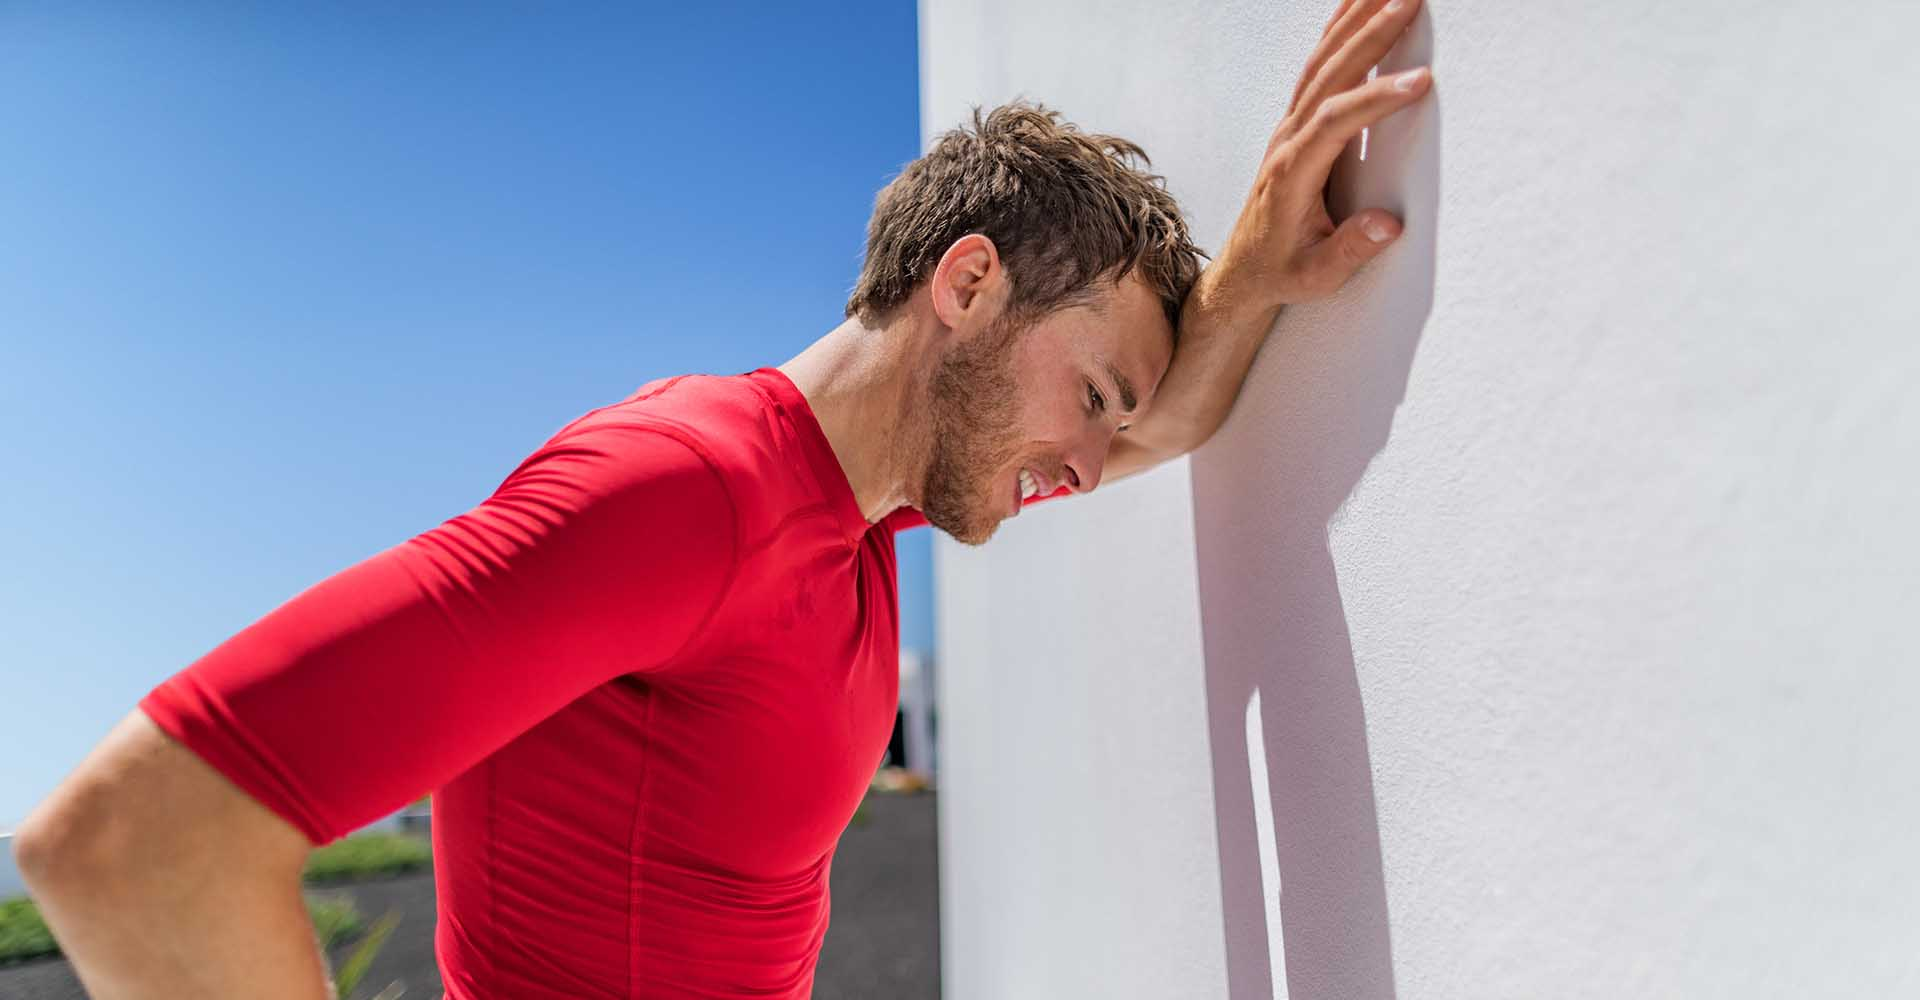 Exhausted man leaning on the wall due to fatigue breathing difficulty after doing physical exercises